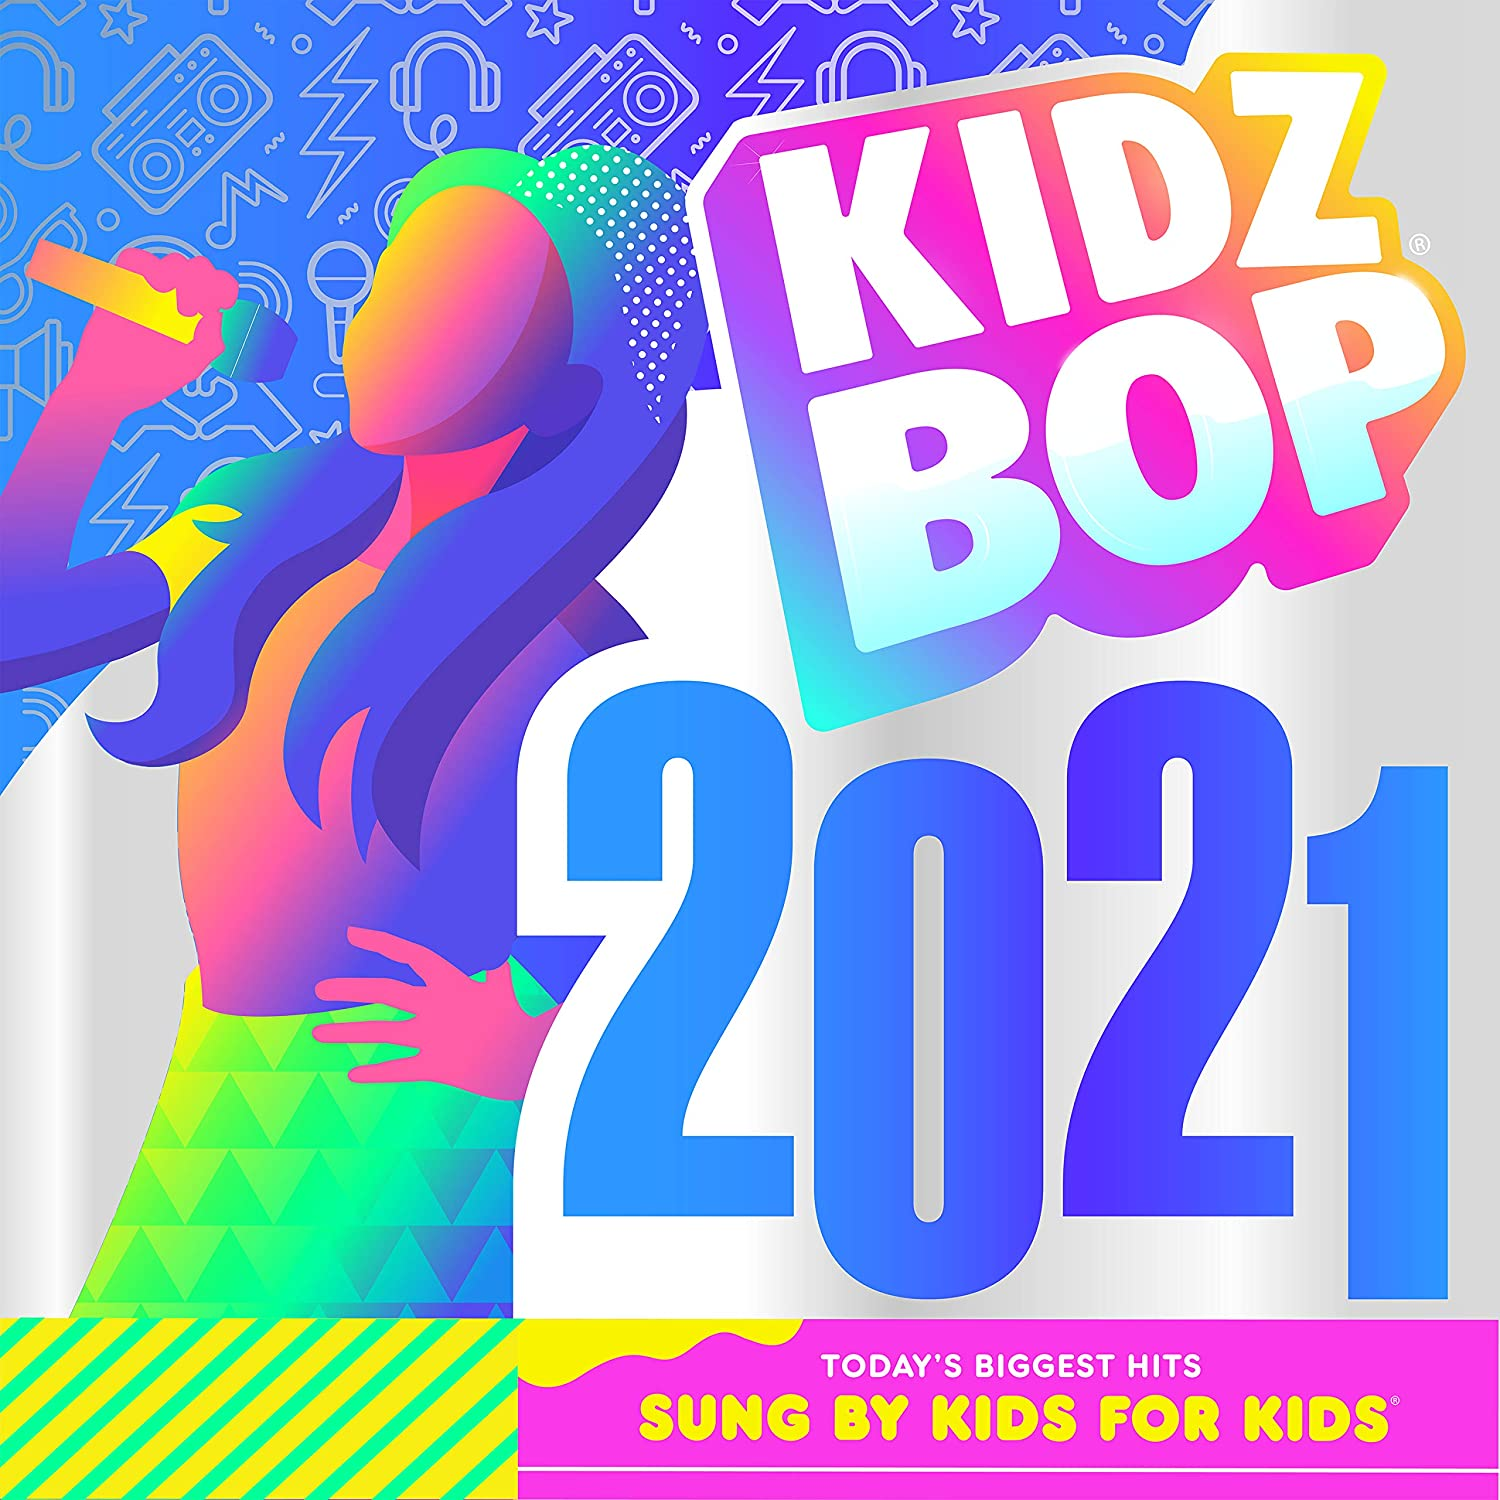 Home Kidz Bop Original lyrics of clap your hands song by whilk and misky. home kidz bop